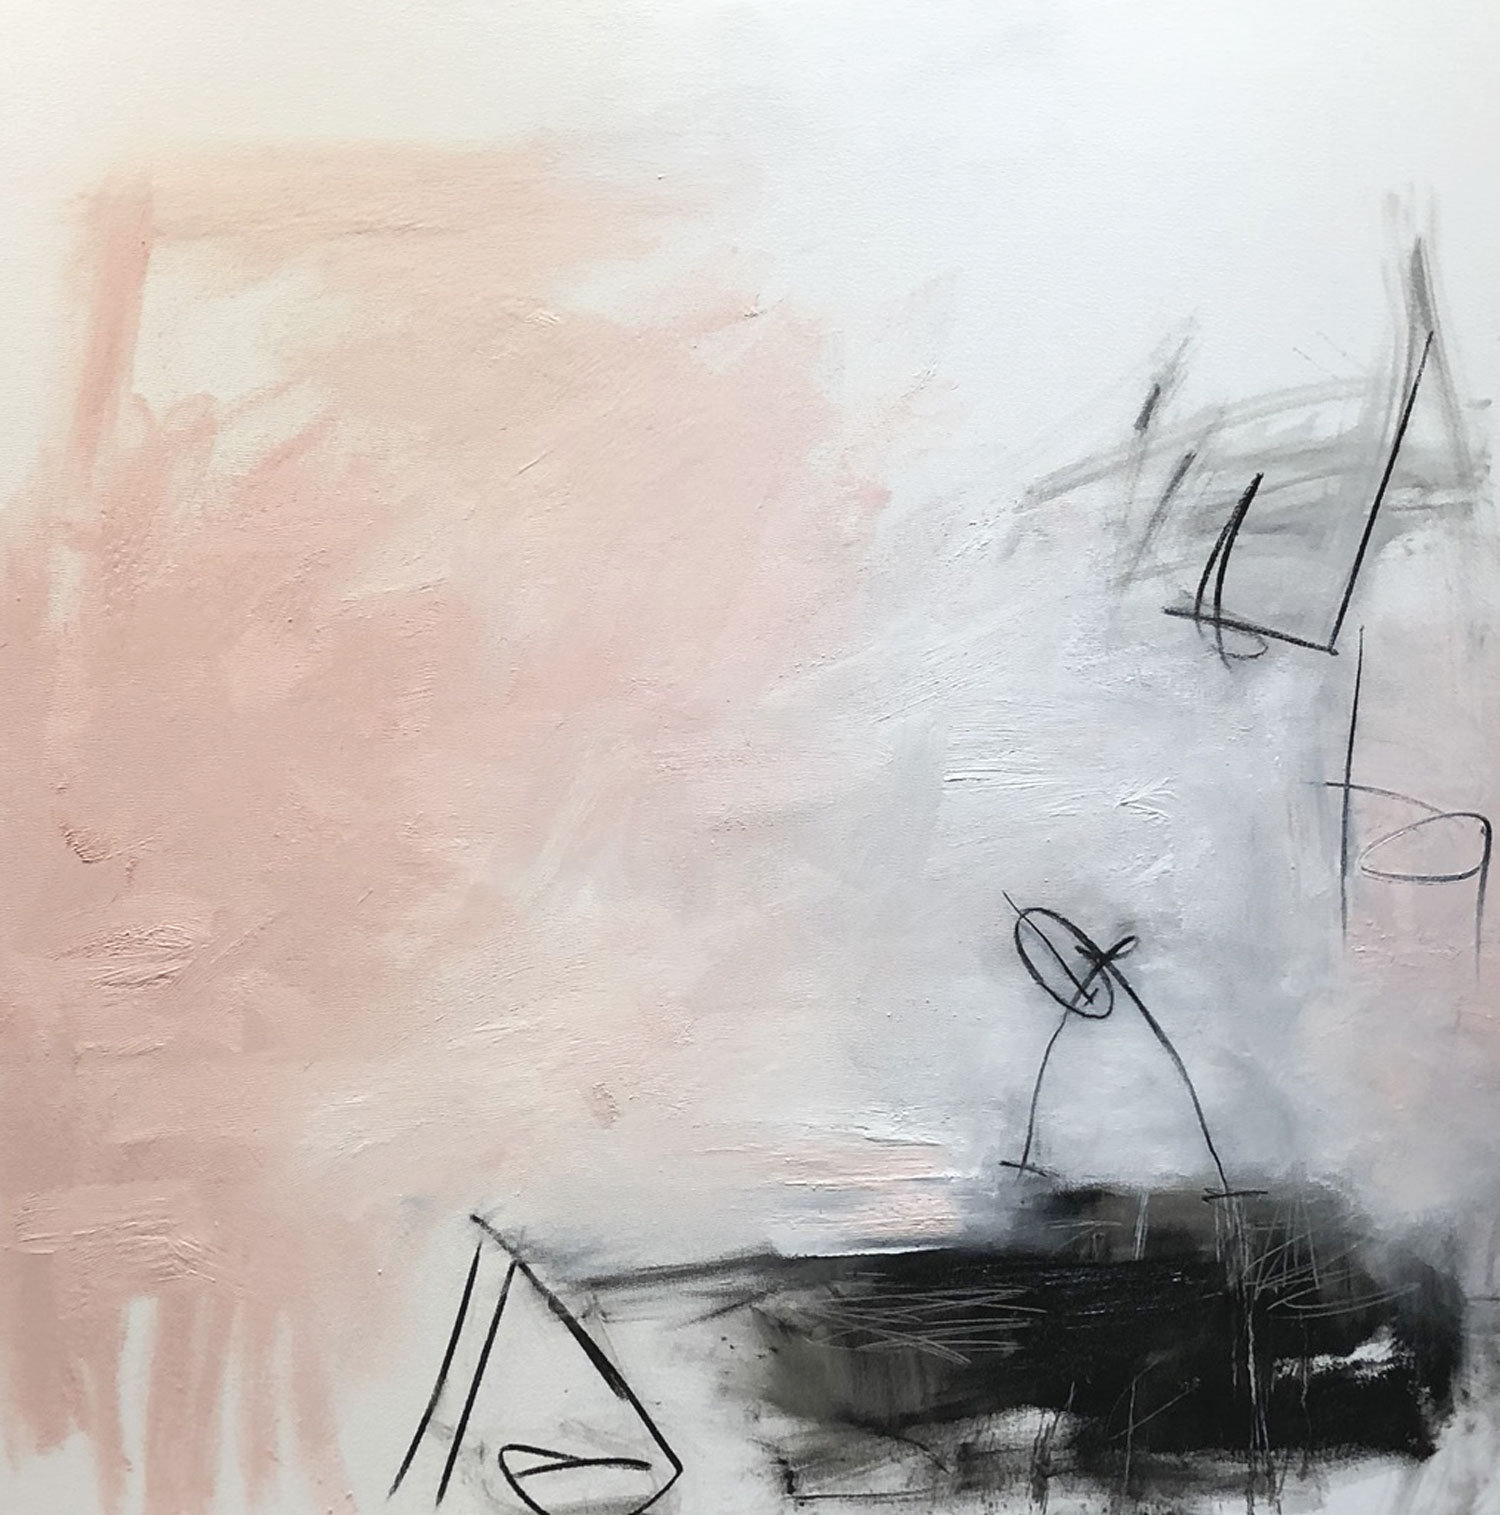 Pleasantly Chaotic by Judy Hintz Cox | ArtworkNetwork.com